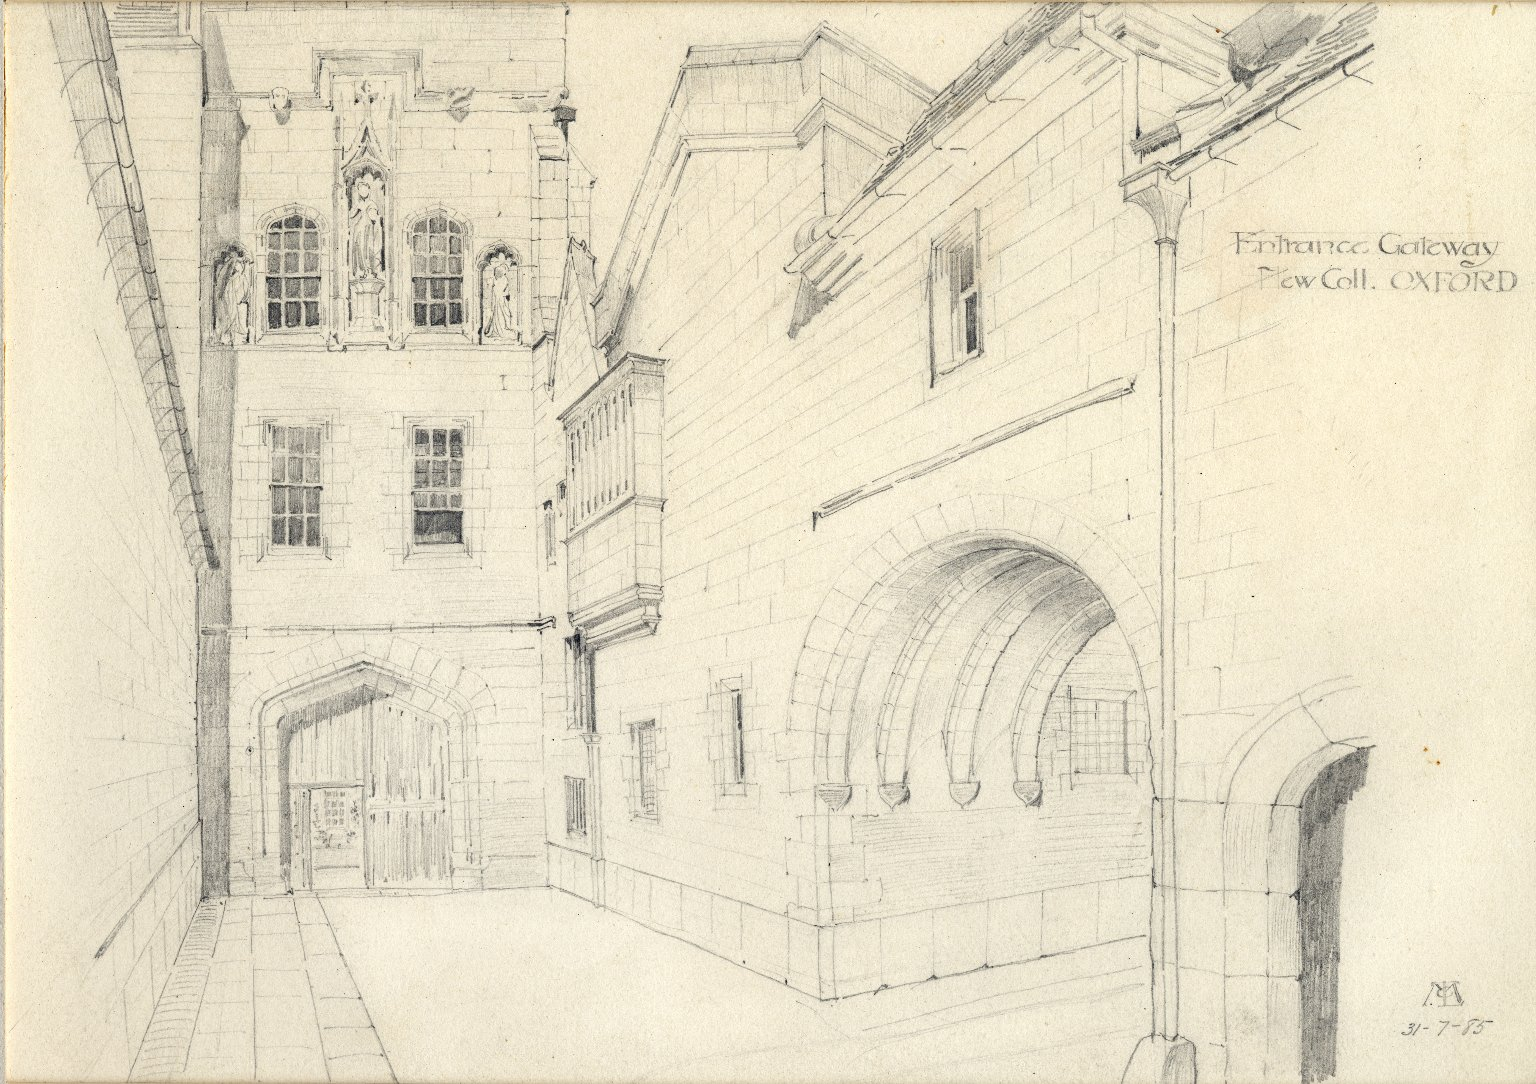 Entrance to New College, Oxford